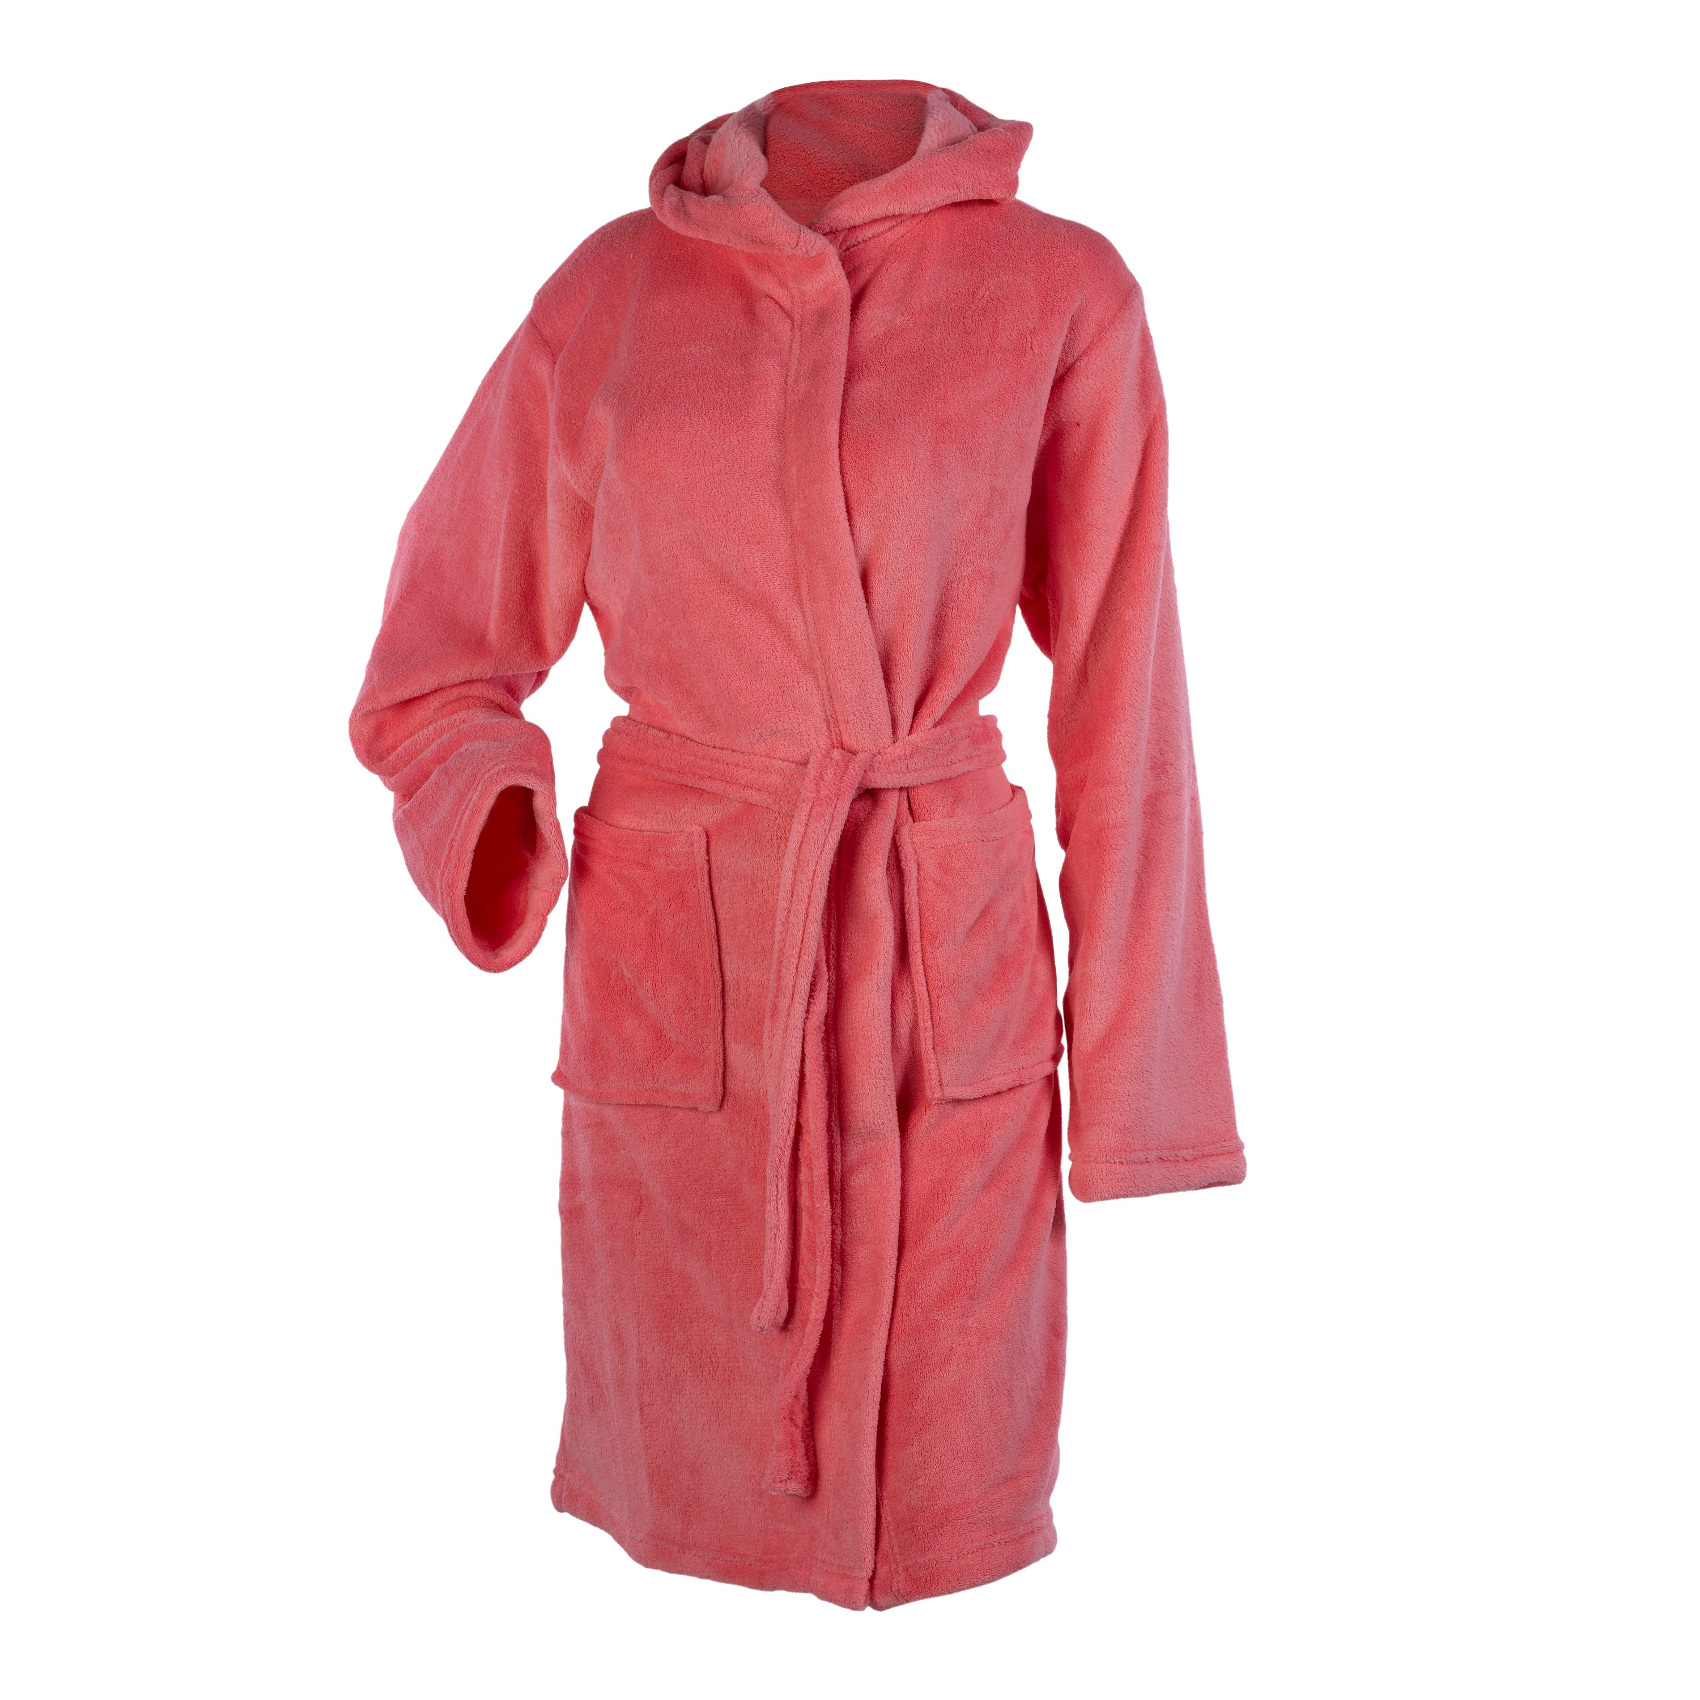 Womens Hooded Wrap Around Dressing Gown Soft Coral Fleece Plain ...